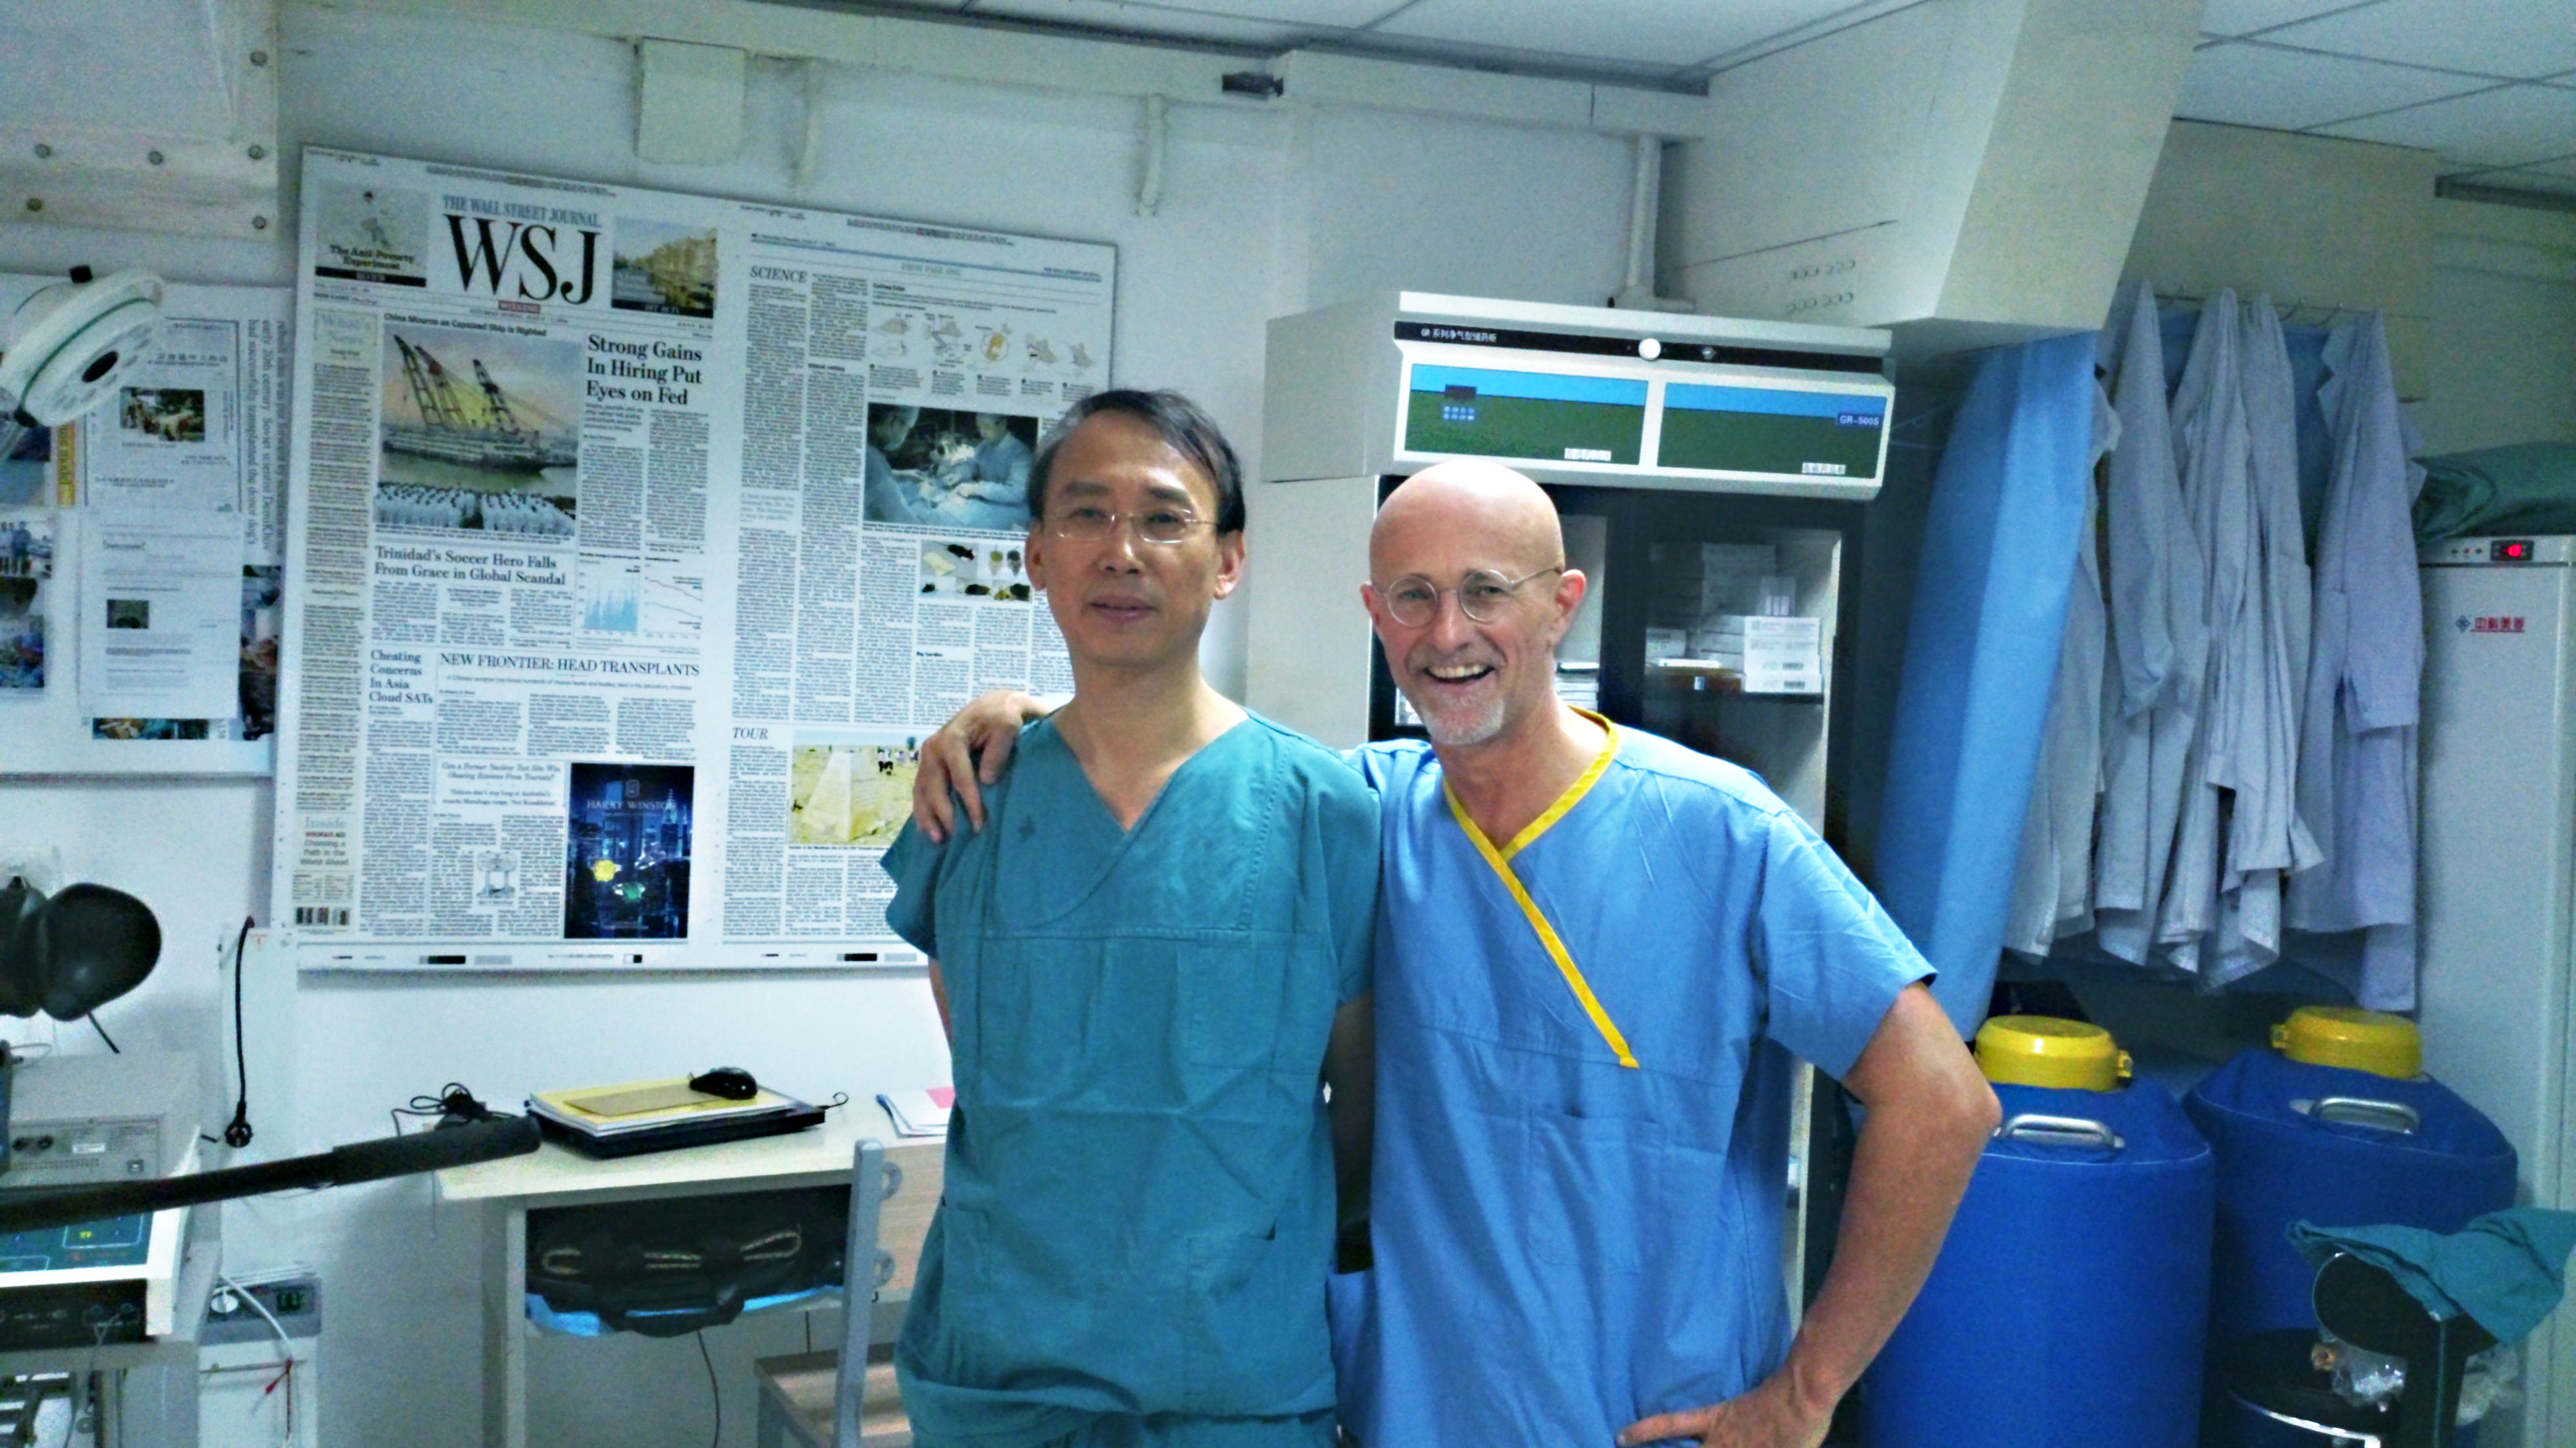 Dr. Xiaoping Ren and Dr. Segio Canavero